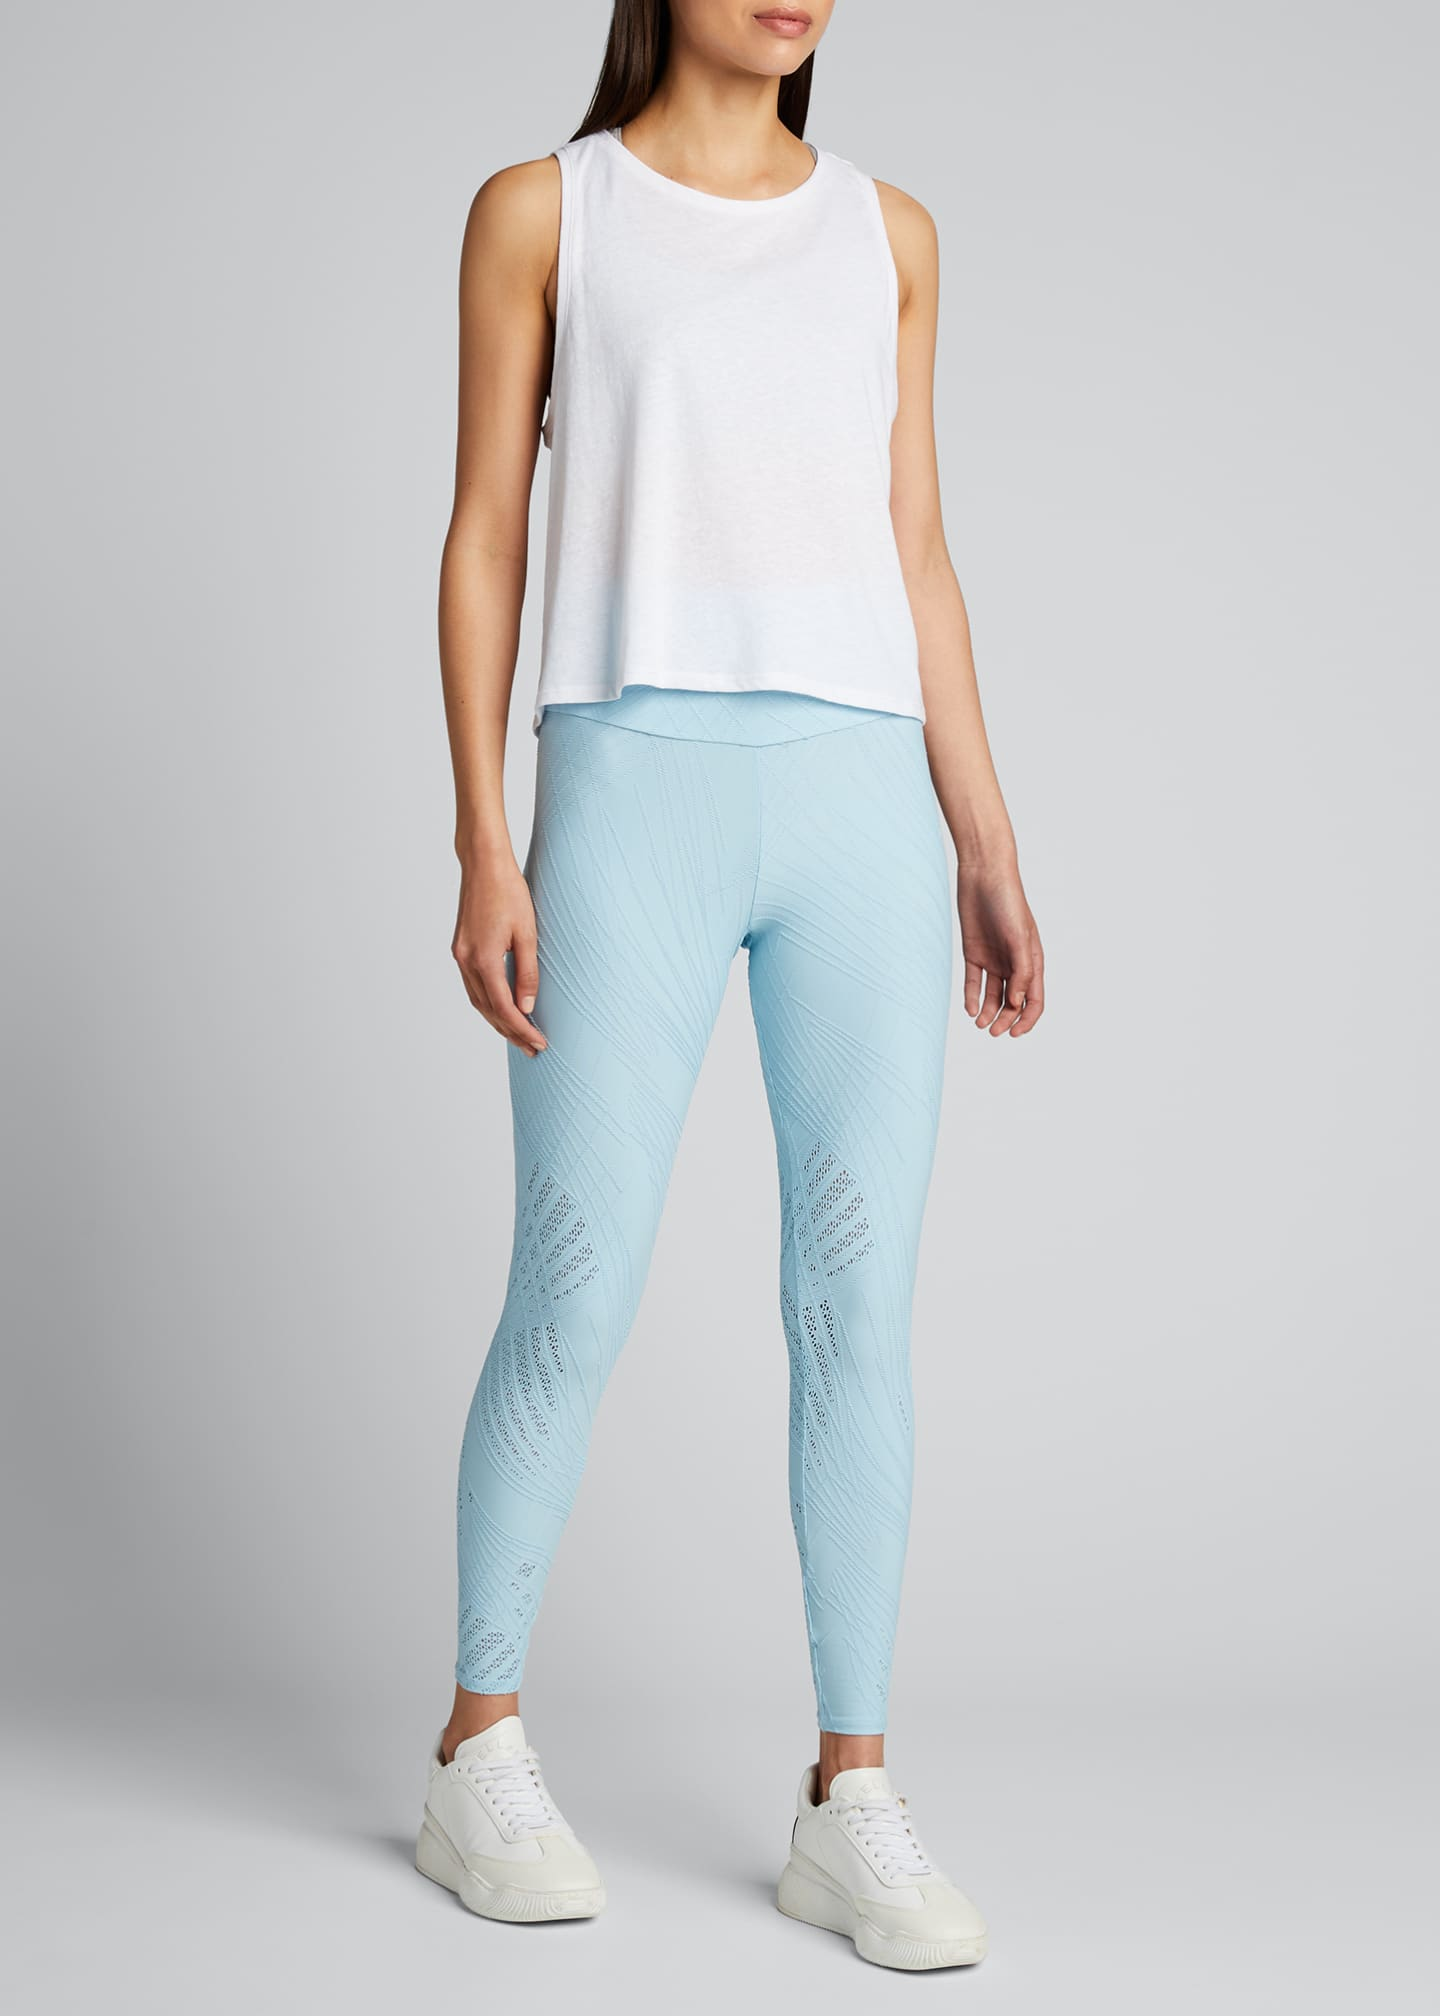 Image 1 of 5: Selenite High-Rise Midi Leggings